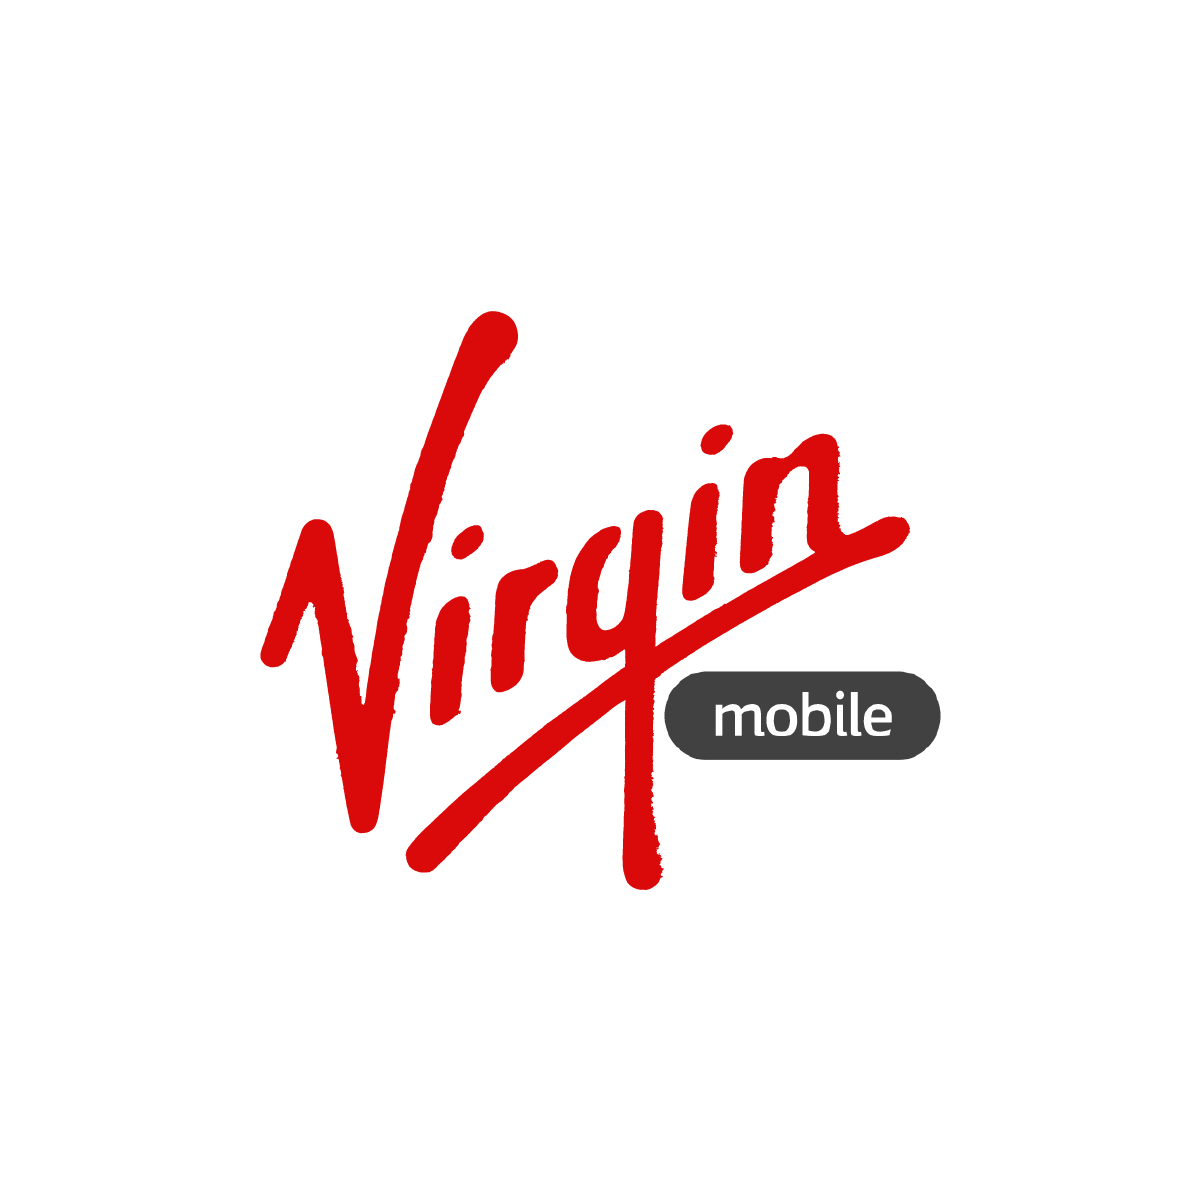 Virgin Mobile UAE logo